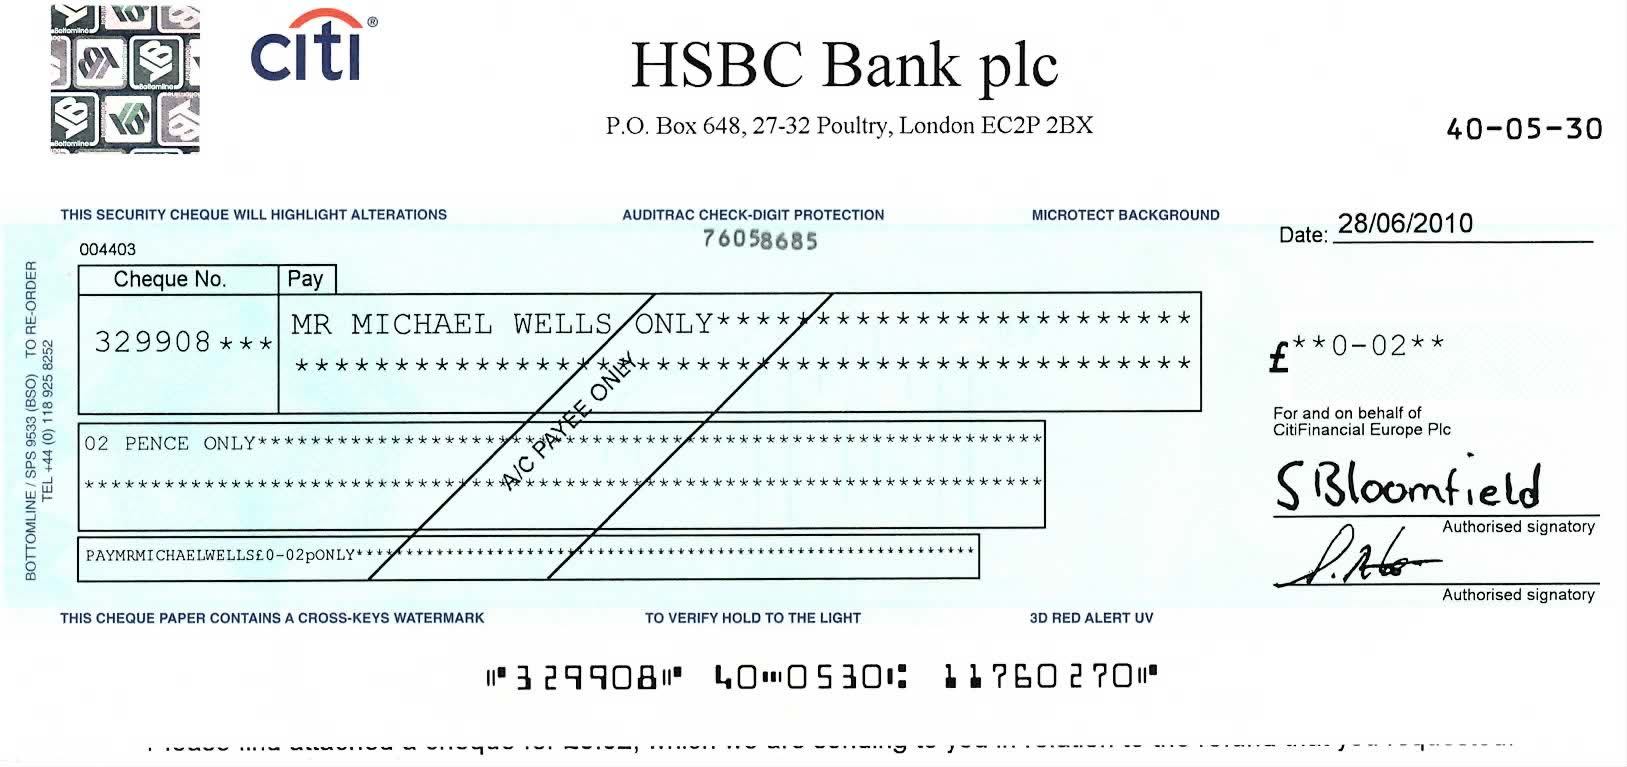 hsbc credit card application status india